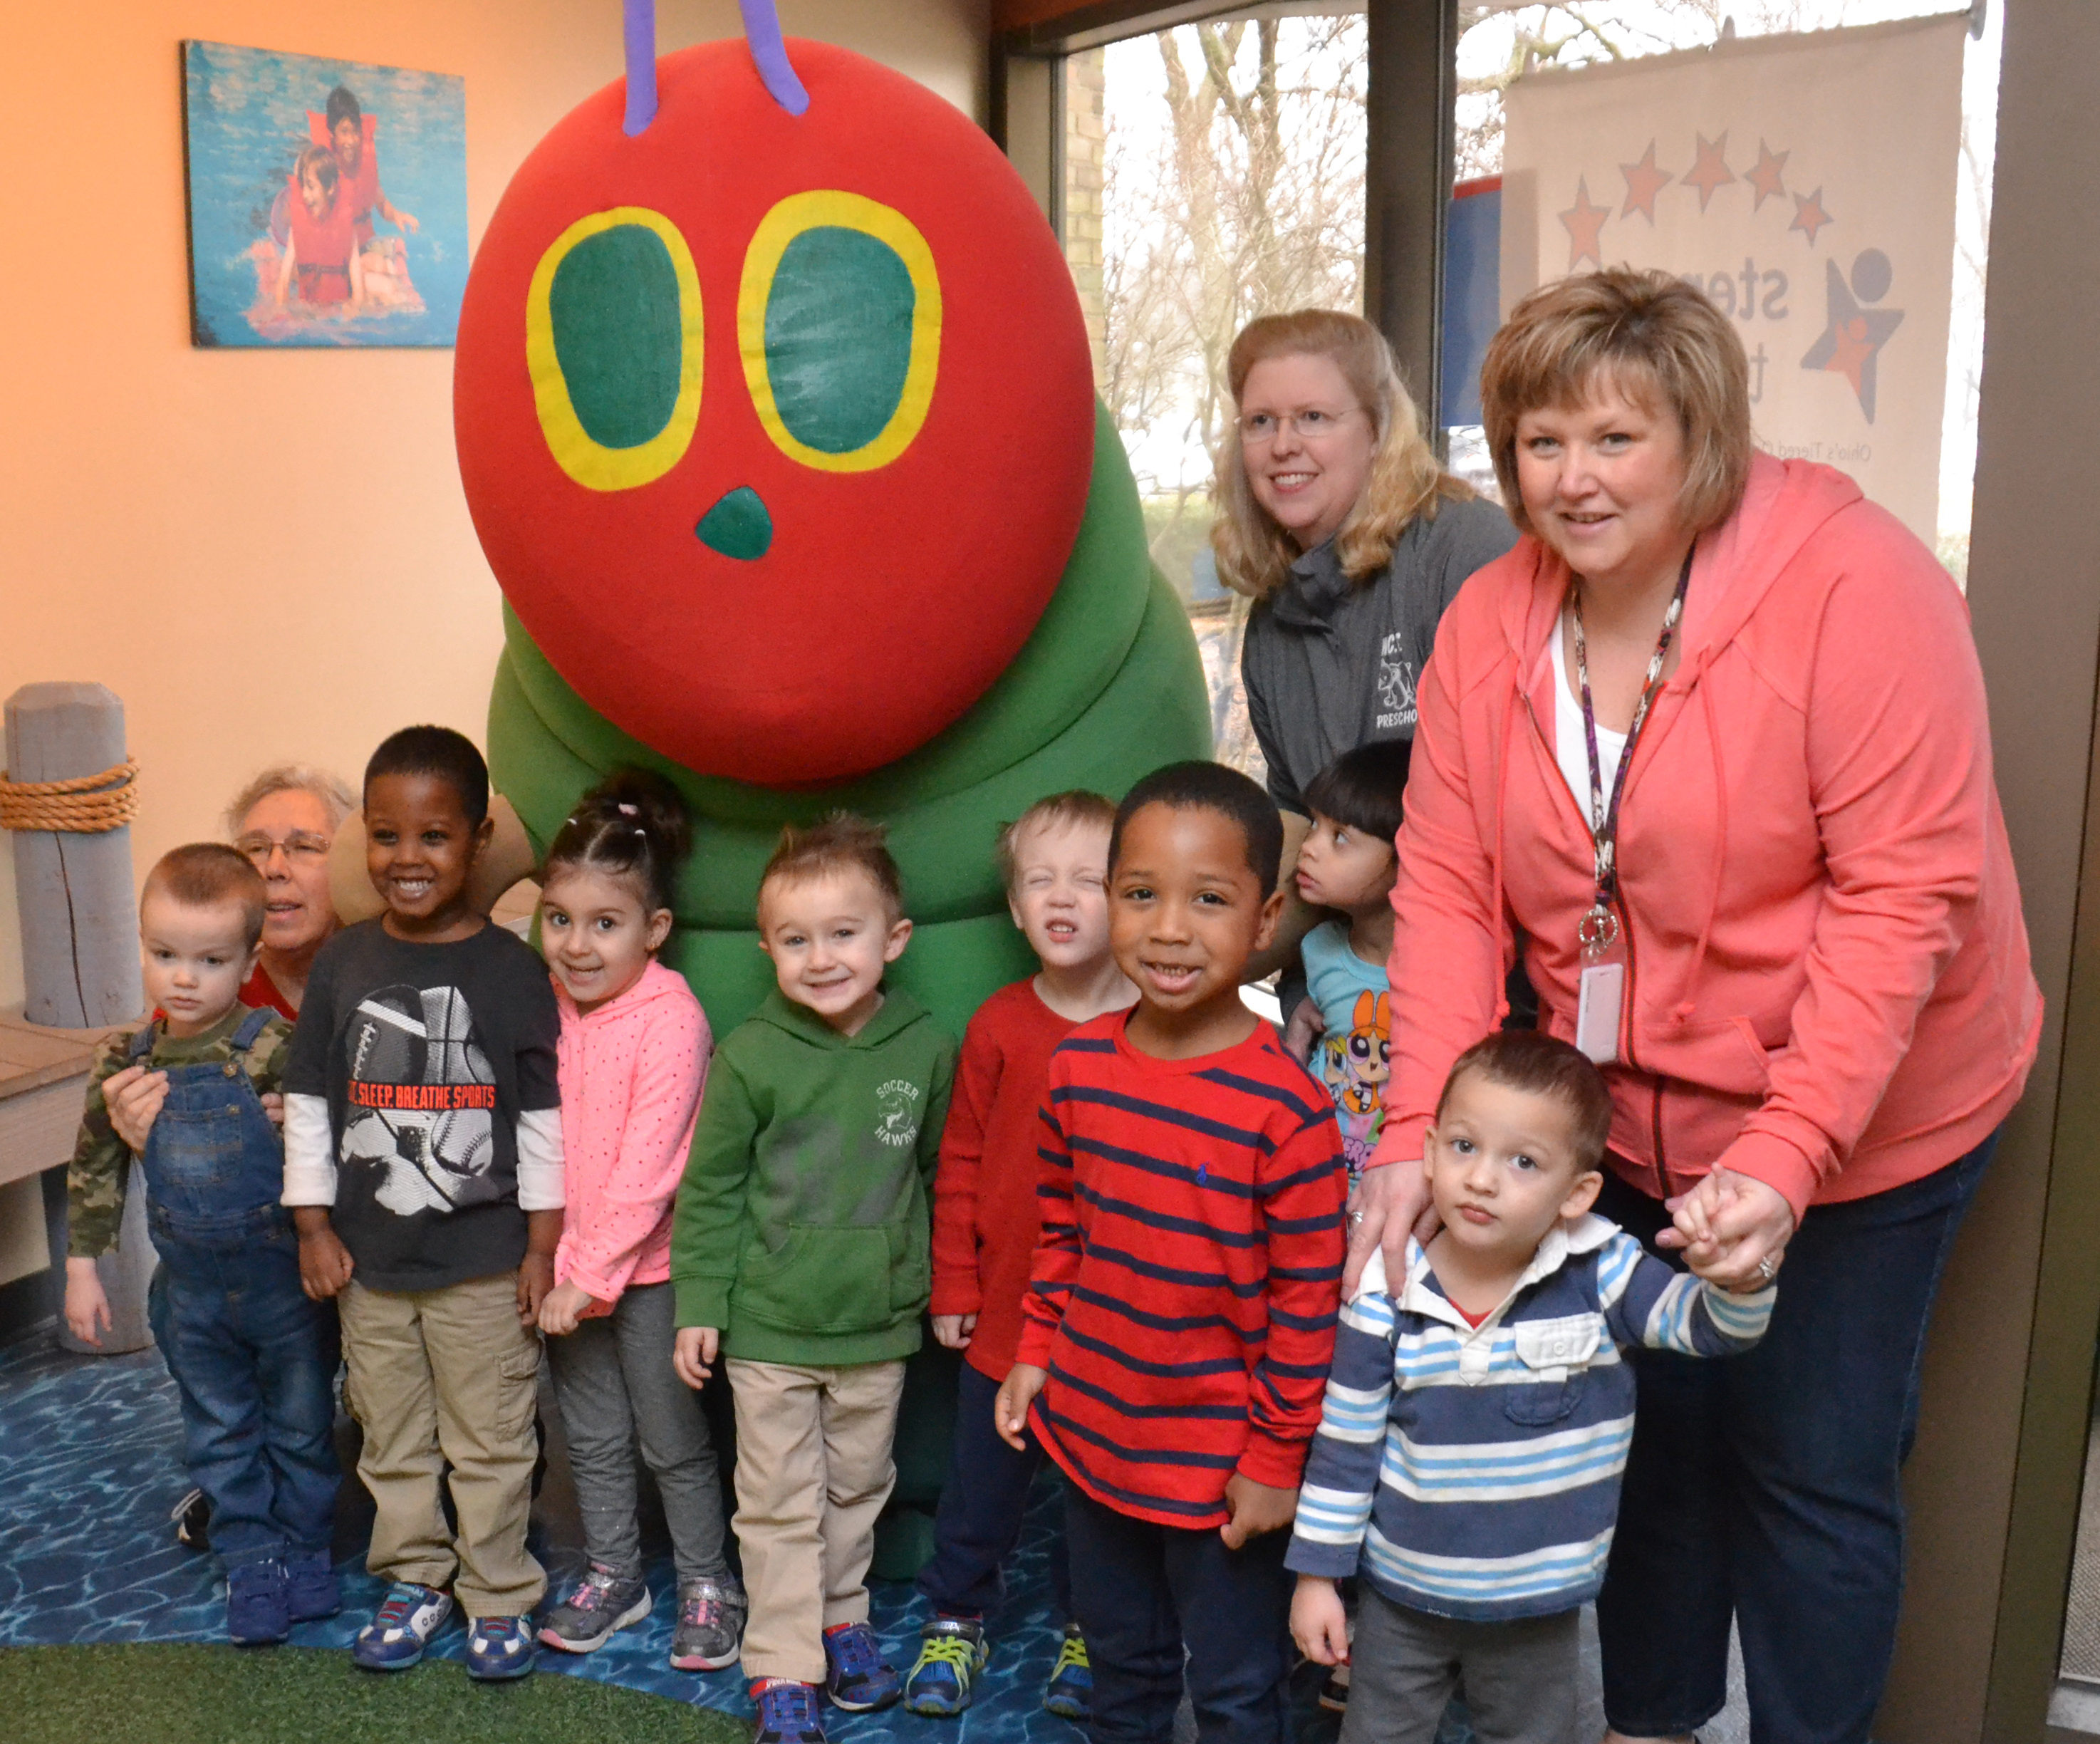 Students meeting the Very Hungry Caterpillar